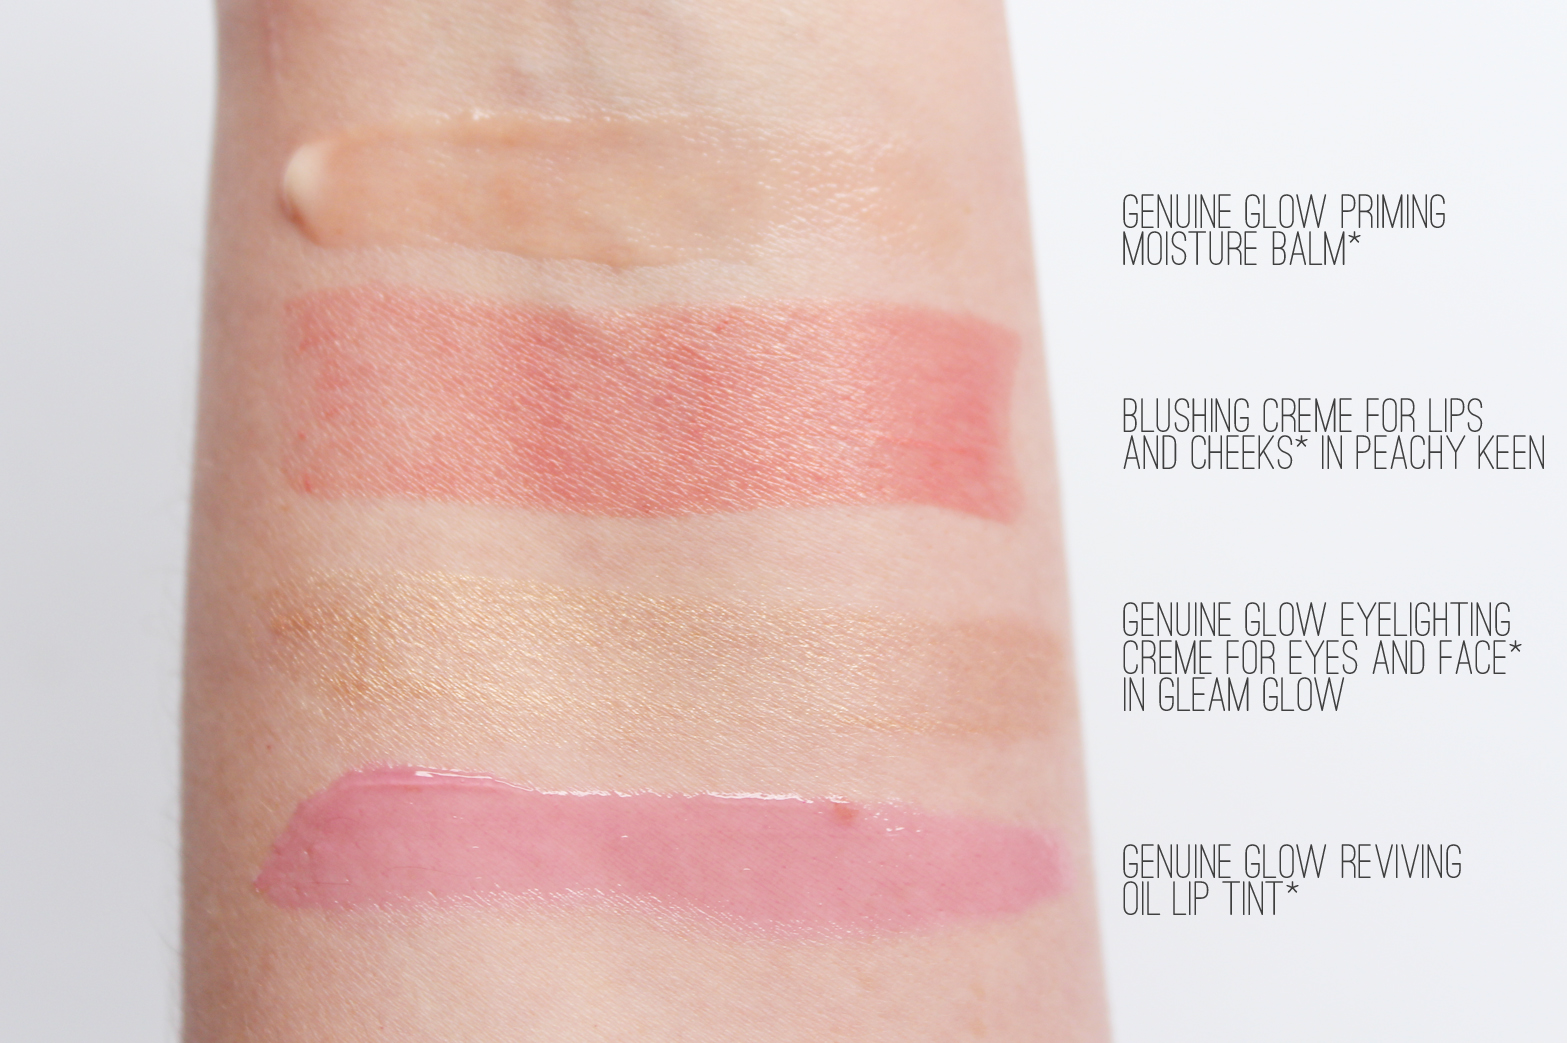 ESTEE LAUDER | Genuine Glow Collection - Review + Swatches - CassandraMyee